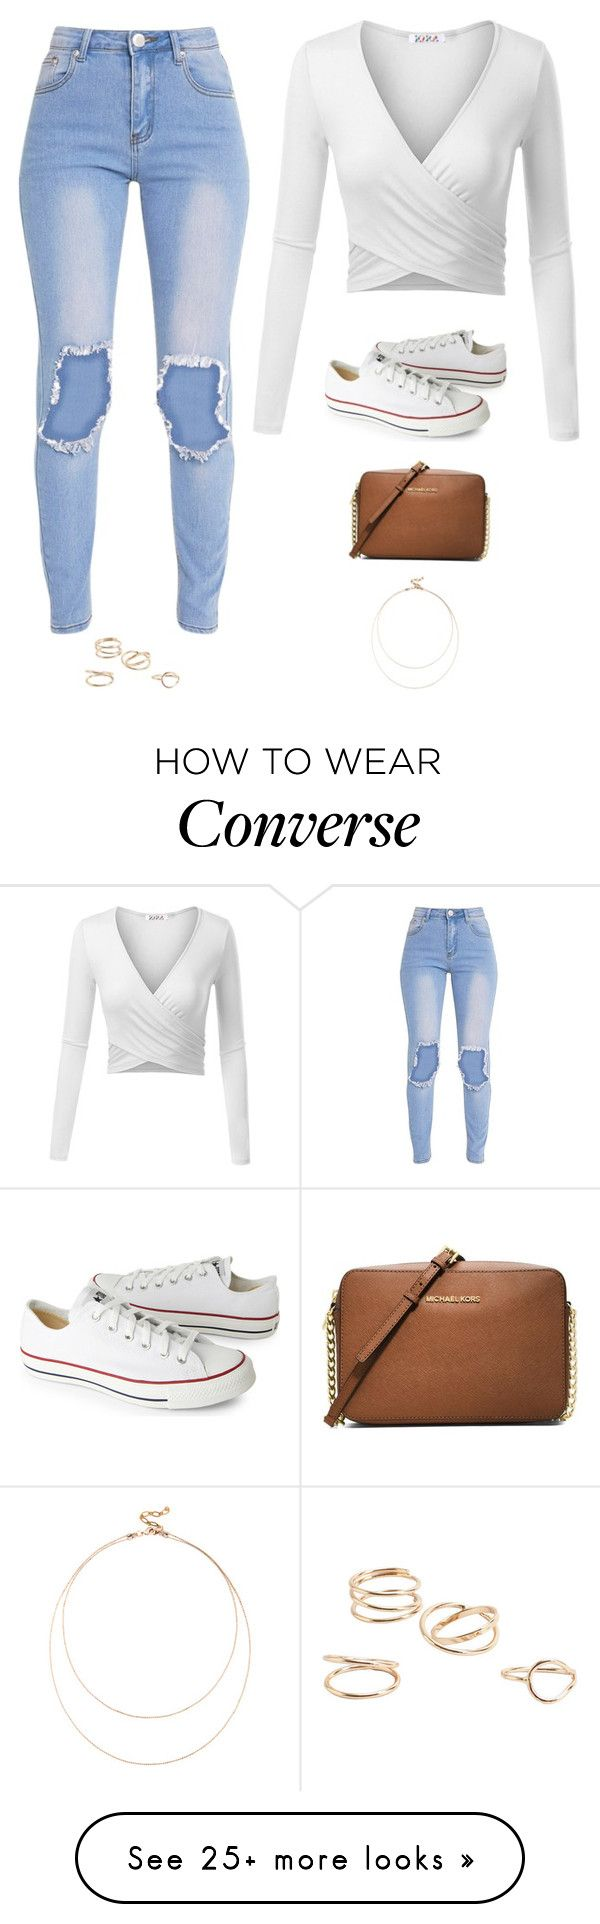 Untitled #3504 by twerkinonmaz on Polyvore featuring Converse, MICHAEL Michael Kors, Sole Society and MANGO